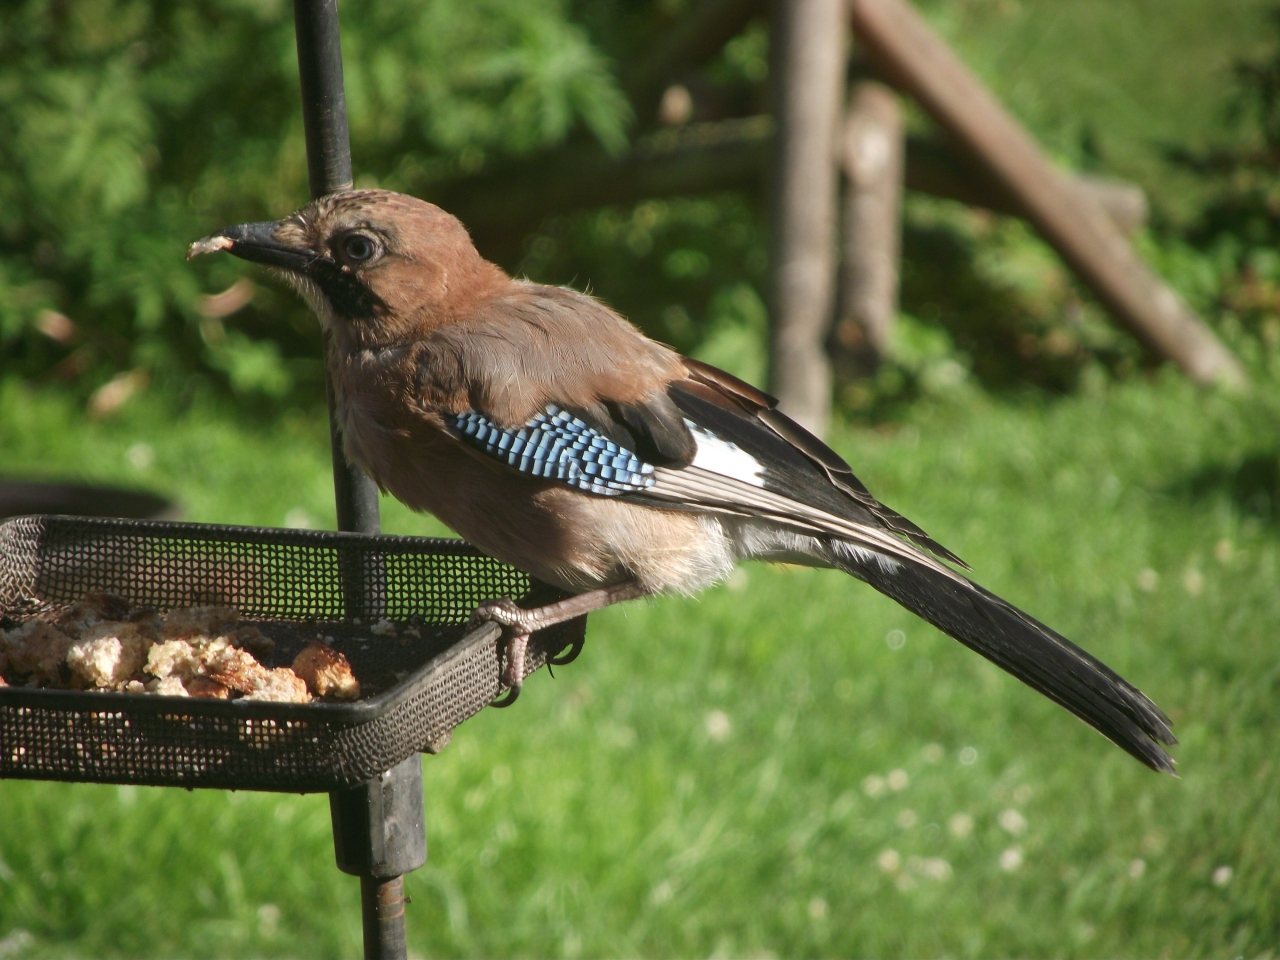 Bull finches